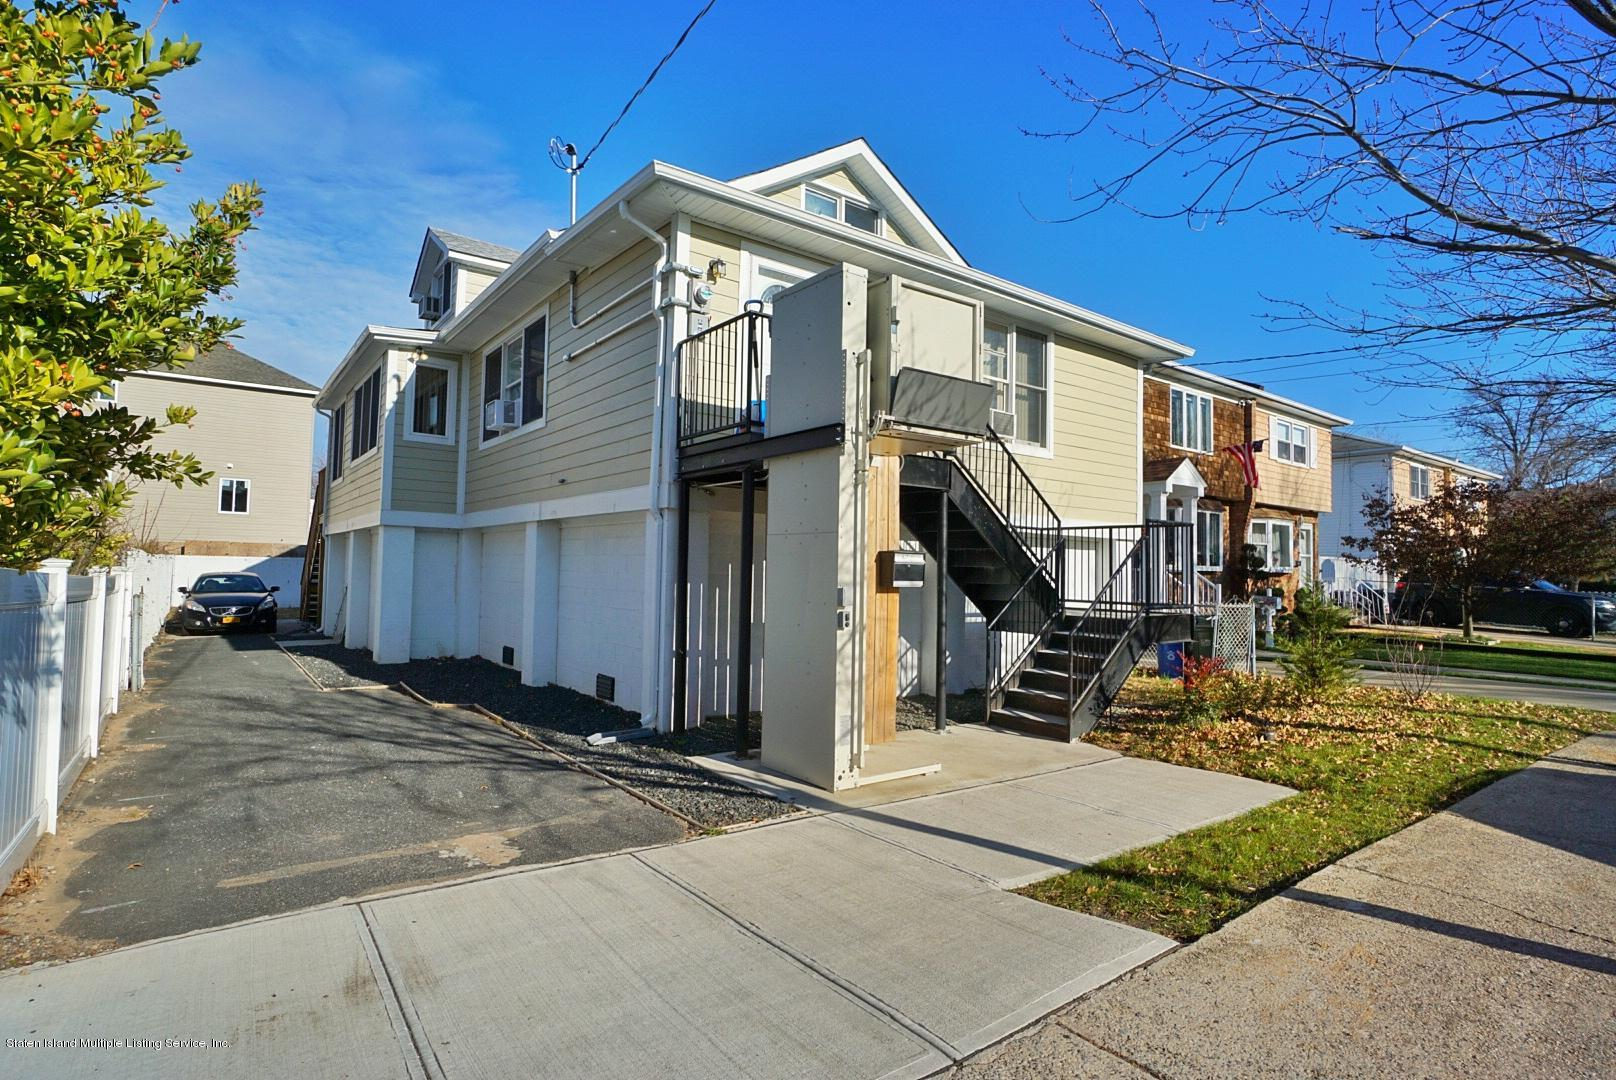 Single Family - Detached 579 Greeley Avenue  Staten Island, NY 10306, MLS-1134240-3